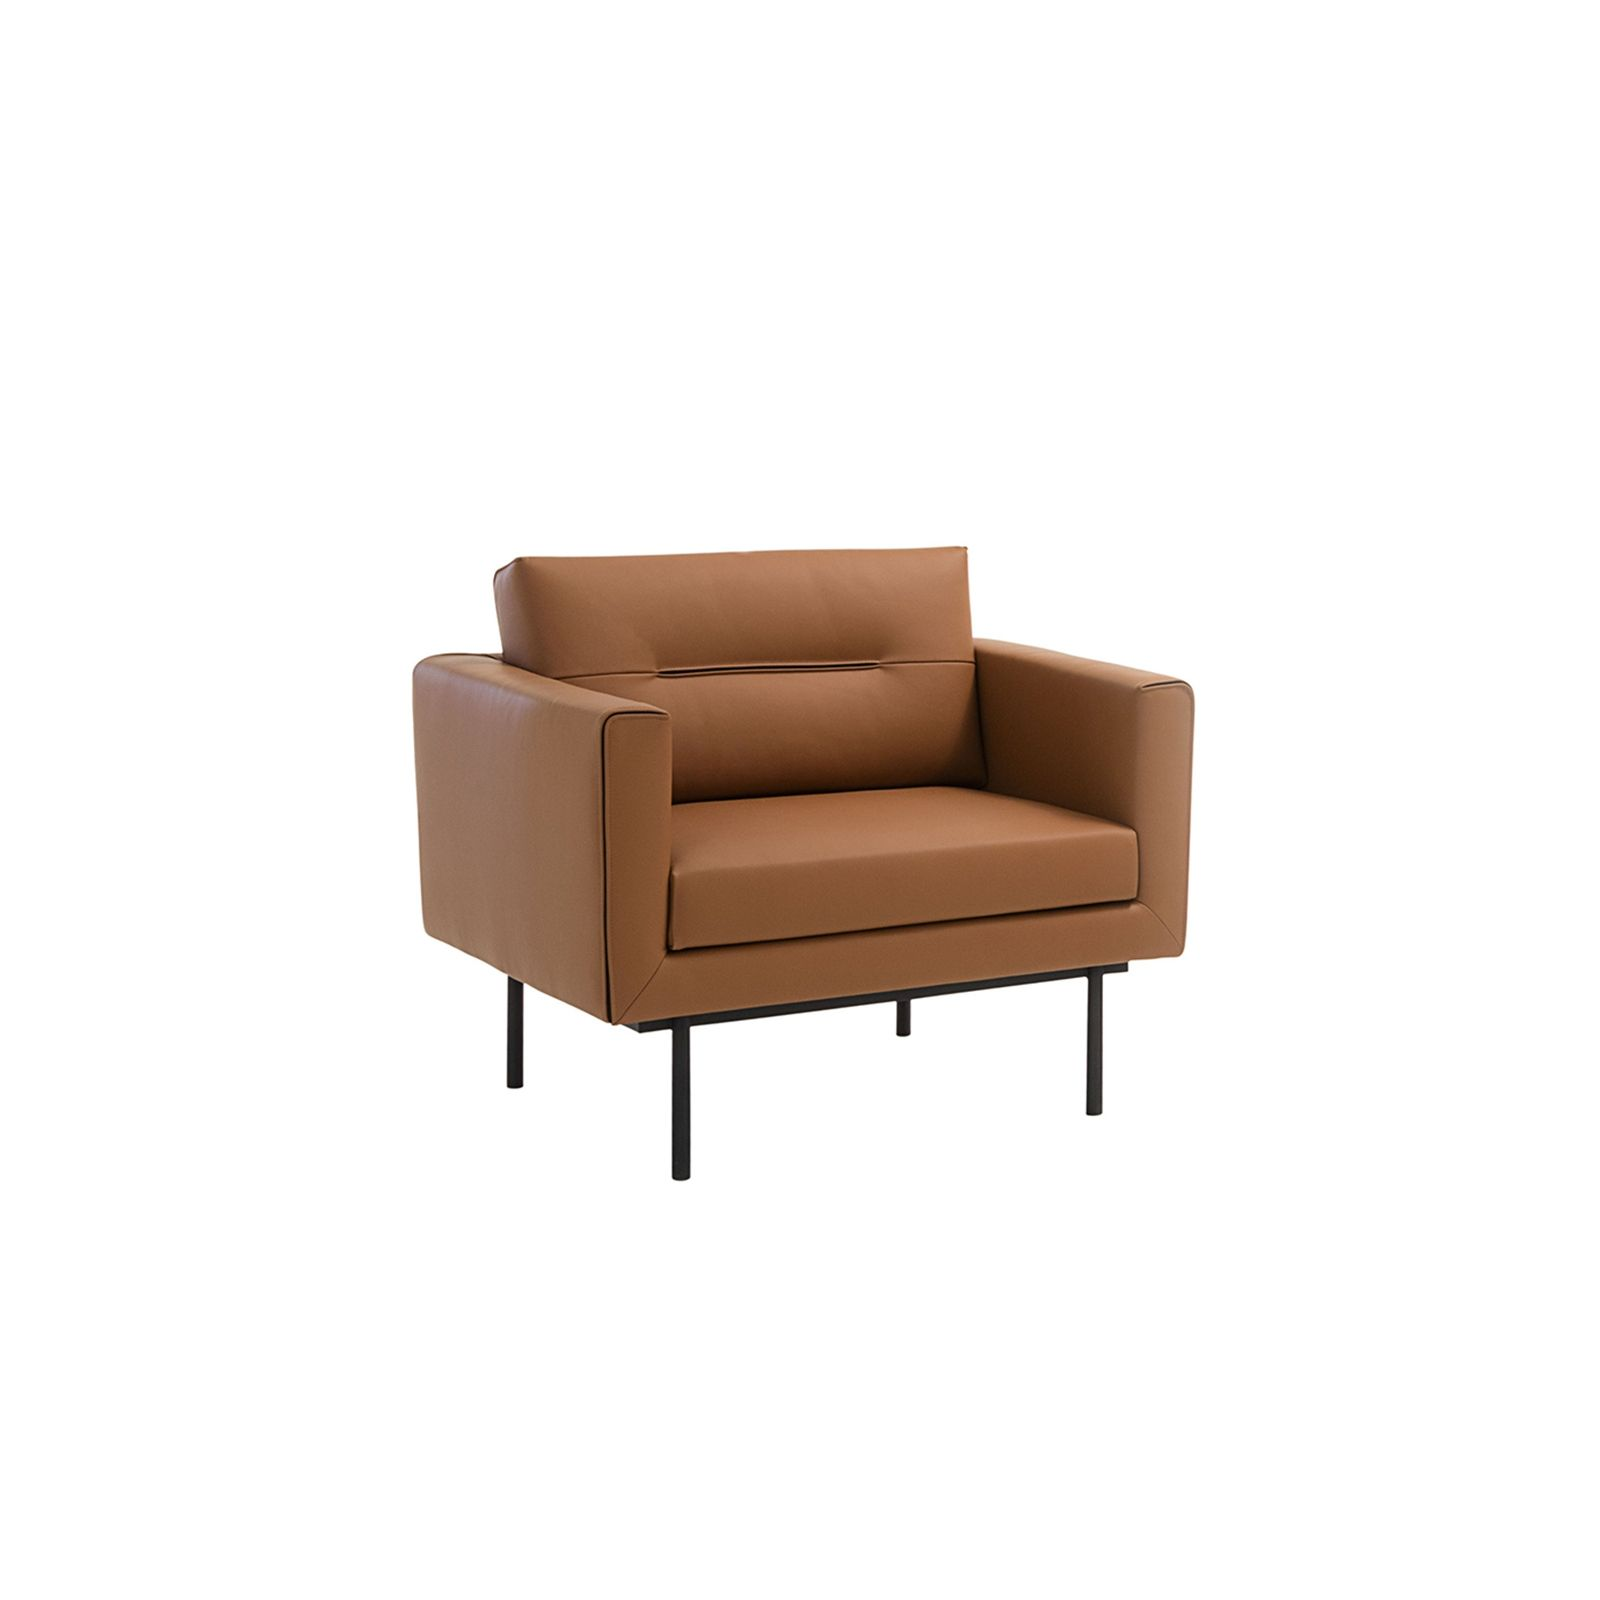 ELEMENT LOUNGE CHAIR